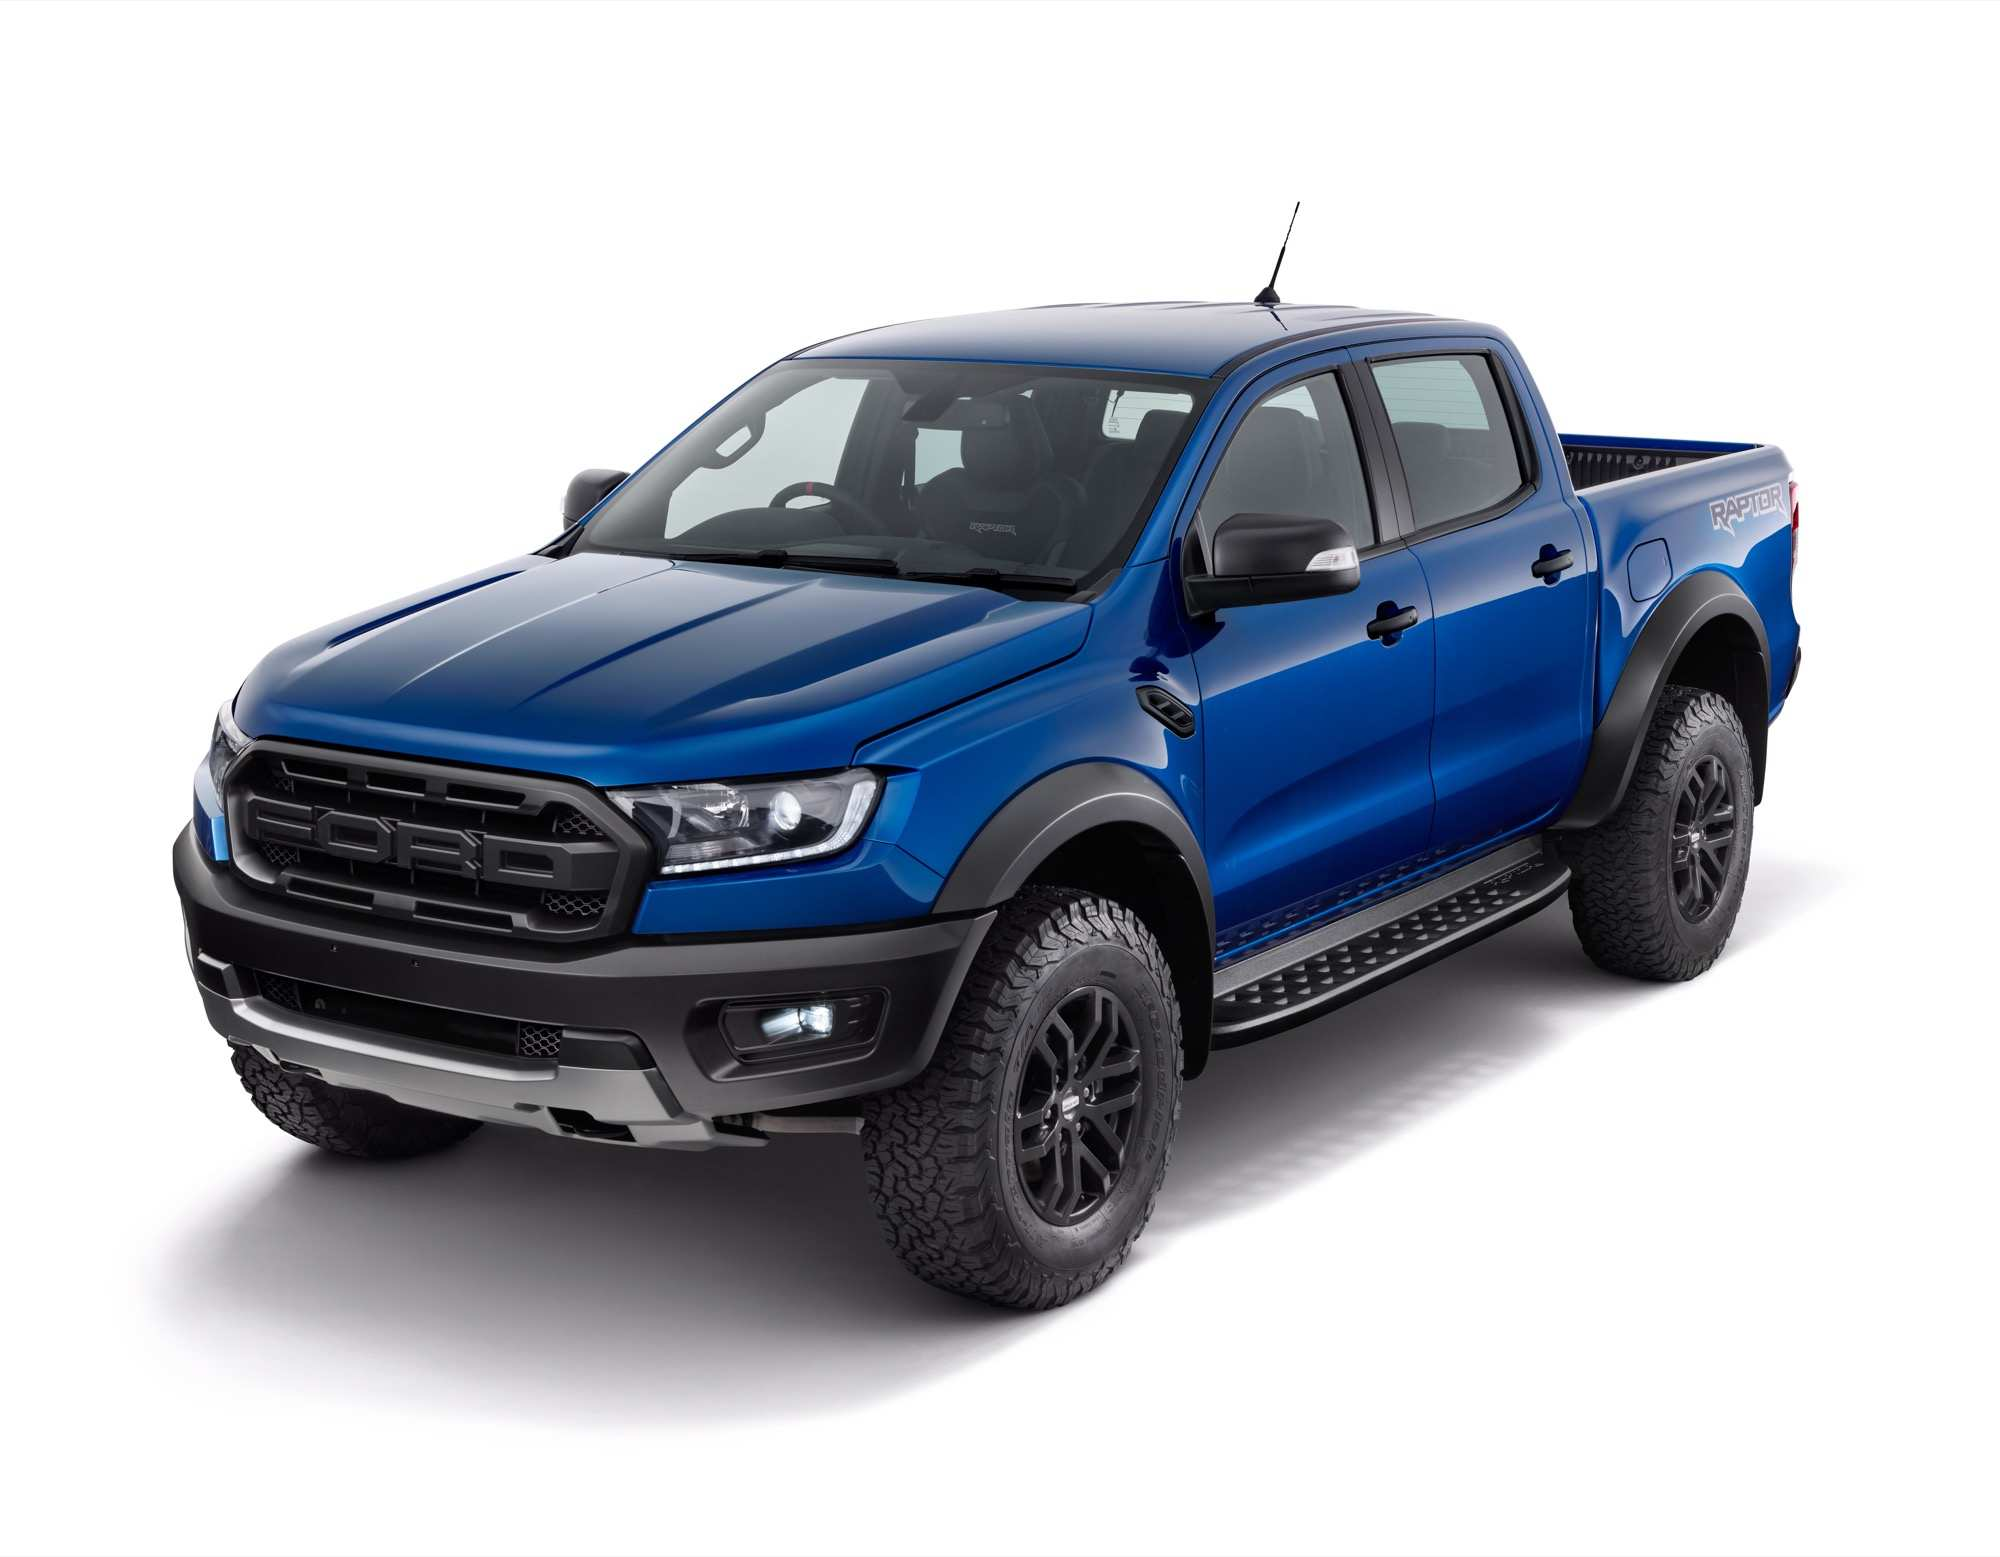 95 The Best 2020 Ford Ranger Specs Reviews